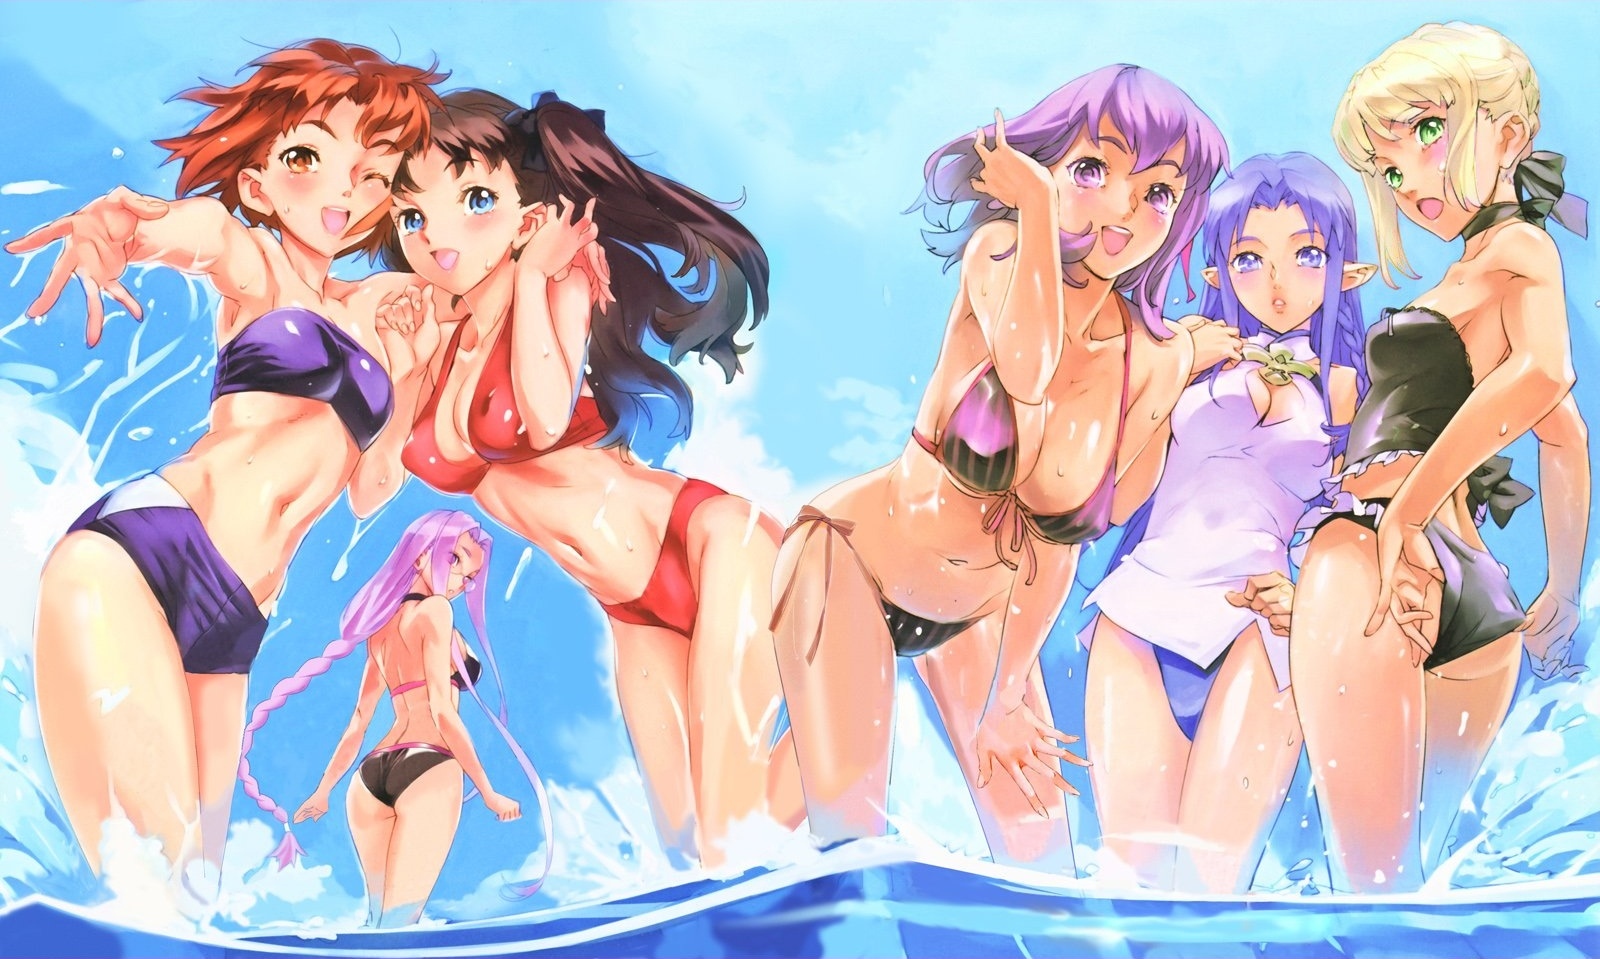 artoria_pendragon_(all) bikini fate_(series) fate/stay_night matou_sakura medea_(fate) navel nishieda pointed_ears rider saber summer swimsuit tohsaka_rin